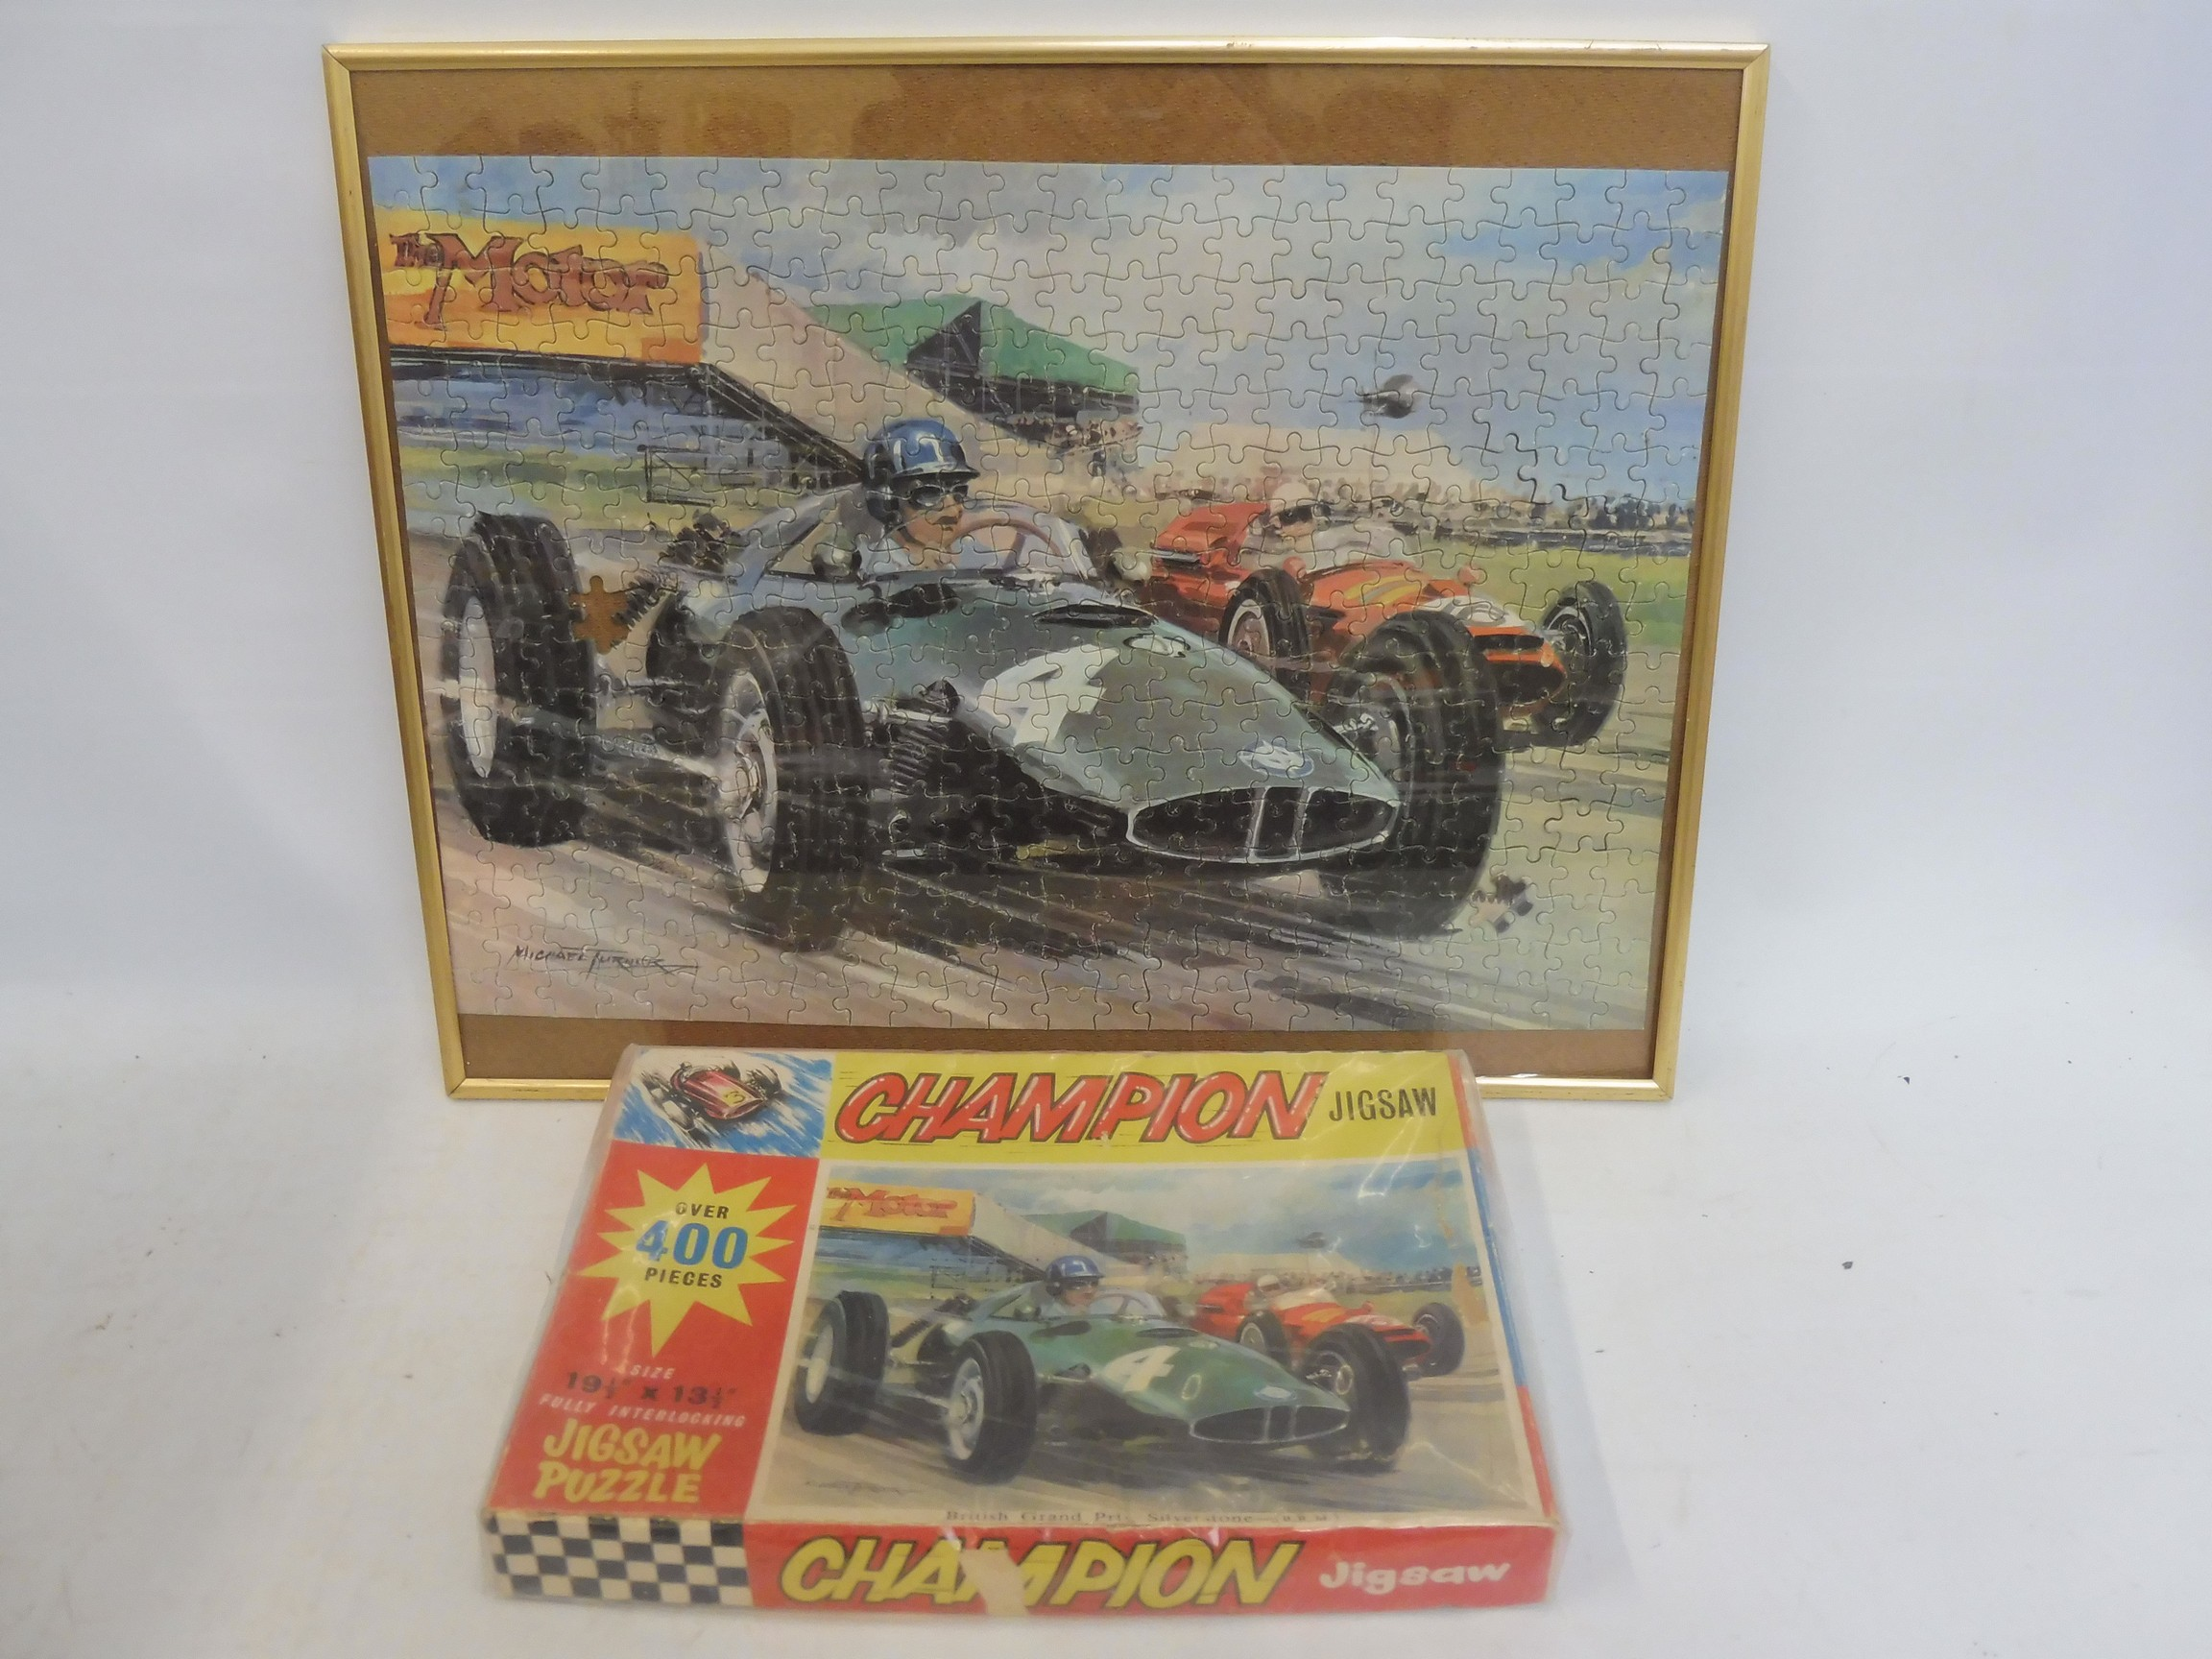 A framed and glazed Champion jigsaw puzzle, with accompanying original box, the scene depicting